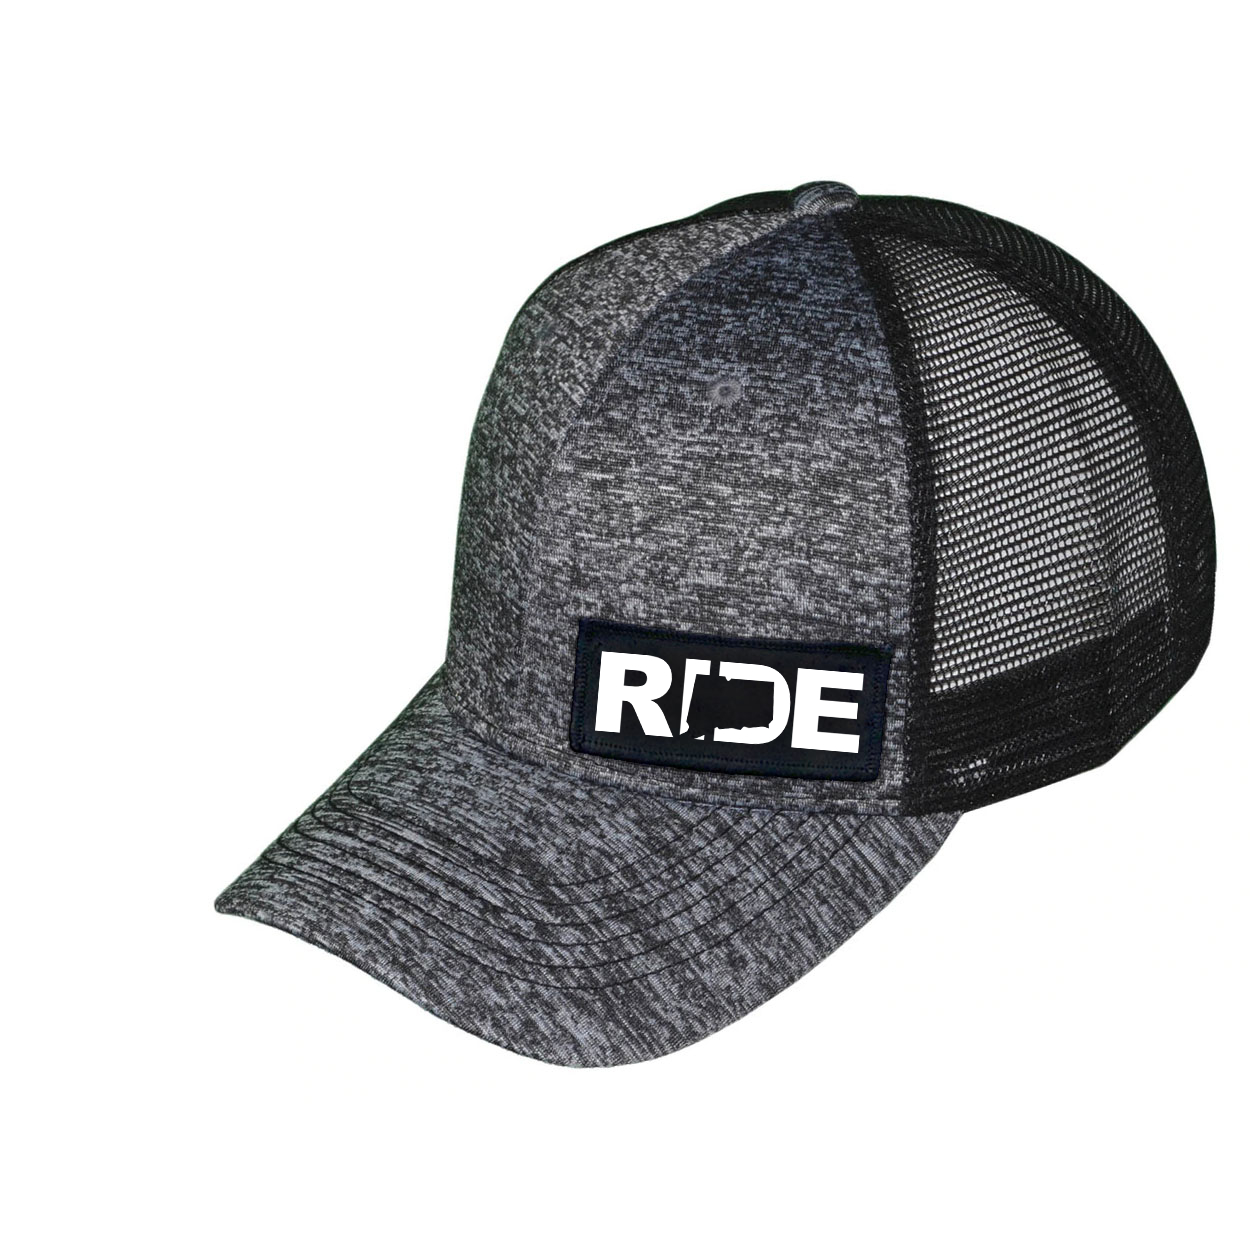 Ride Connecticut Night Out Woven Patch Melange Snapback Trucker Hat Gray/Black (White Logo)